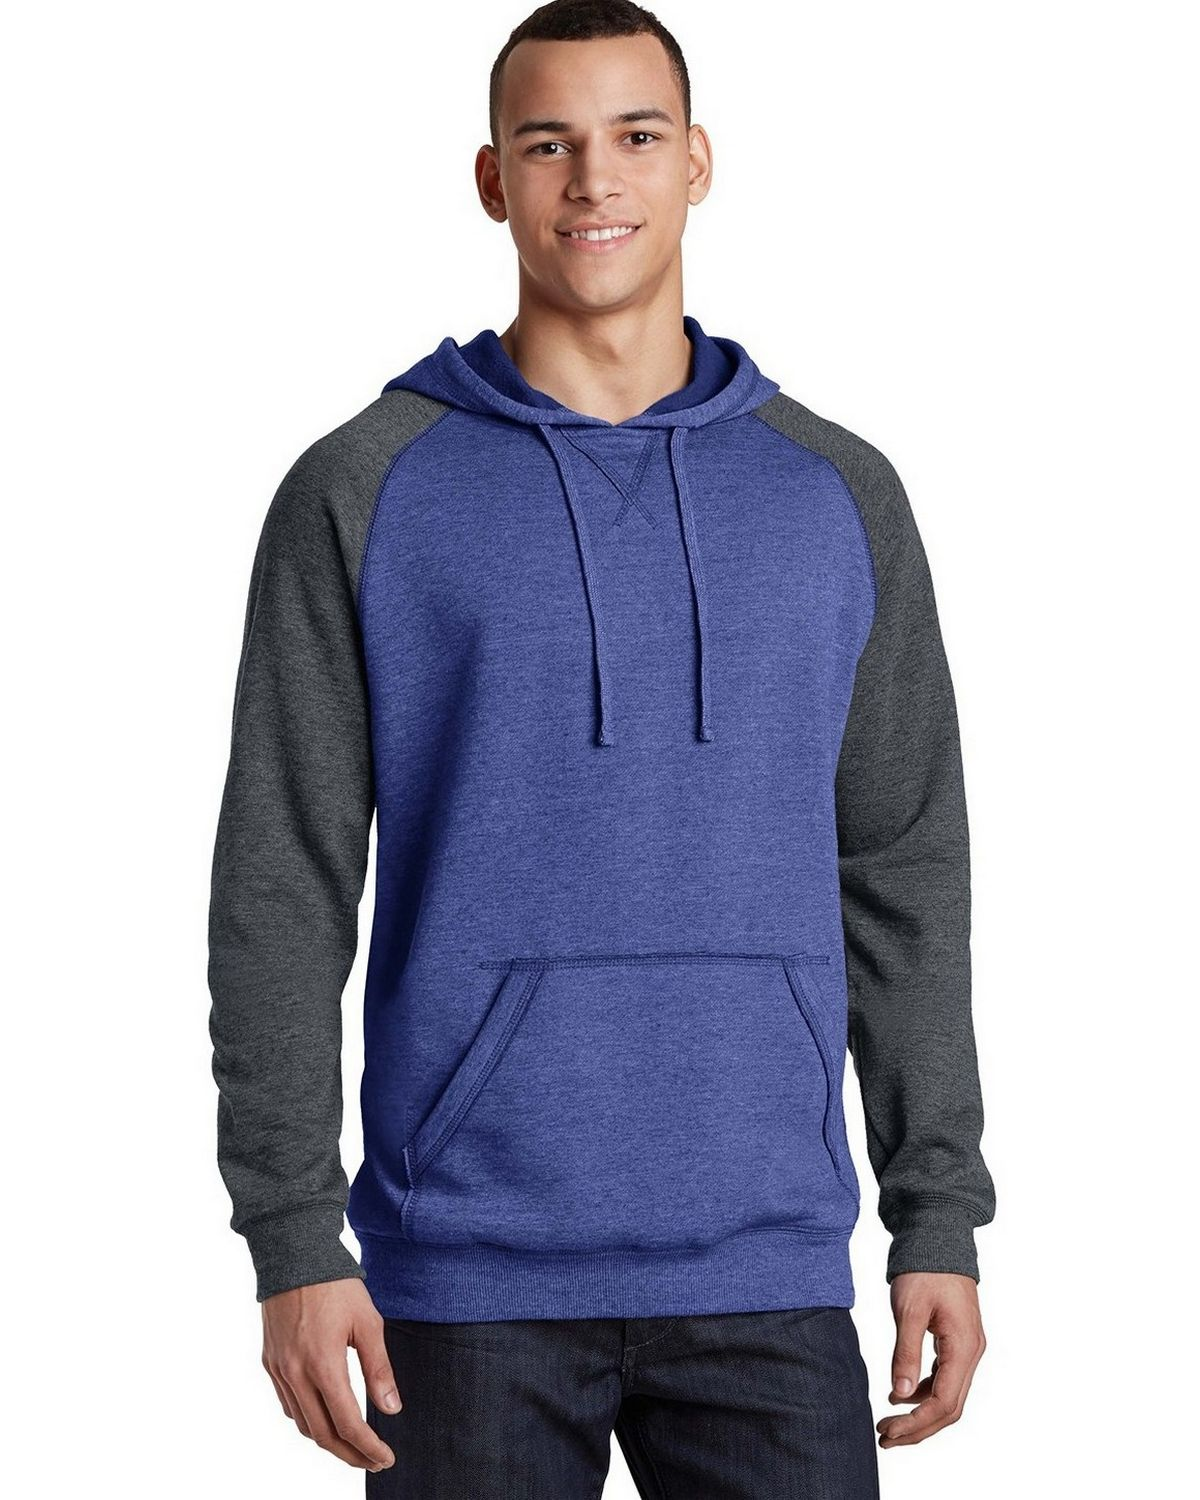 District DT196 Young Mens Fleece Raglan Hoodie - Heathered Red/ Heathered Charcoal - XL DT196